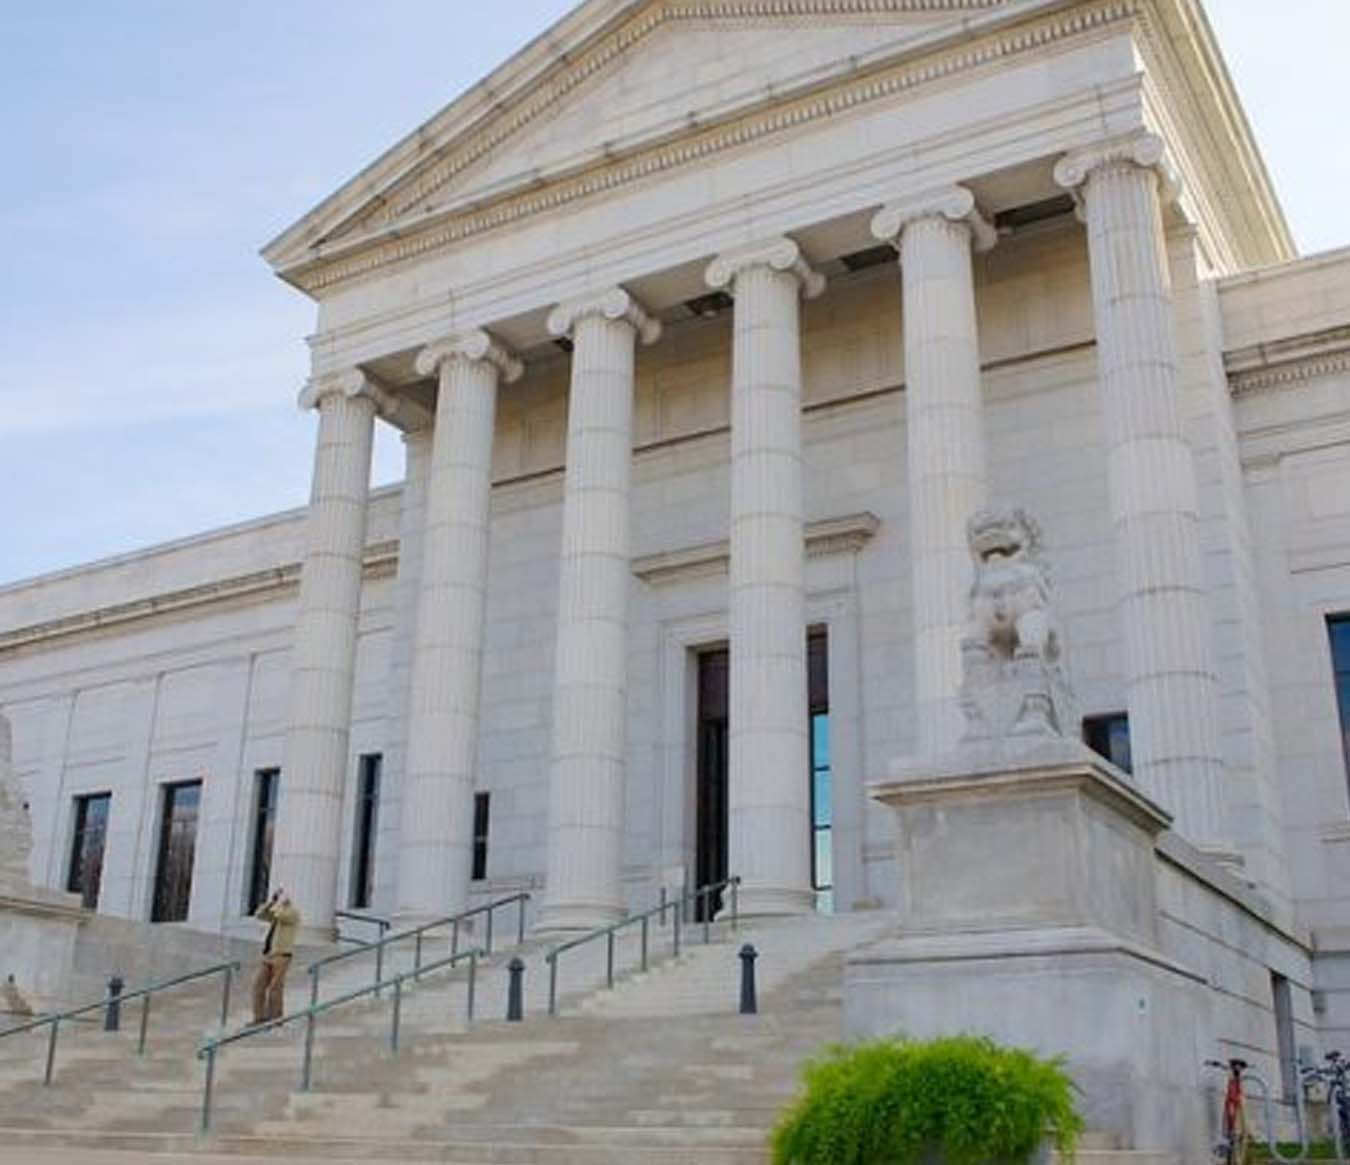 Things to Do in Minnesota - Minneapolis Institute of Art